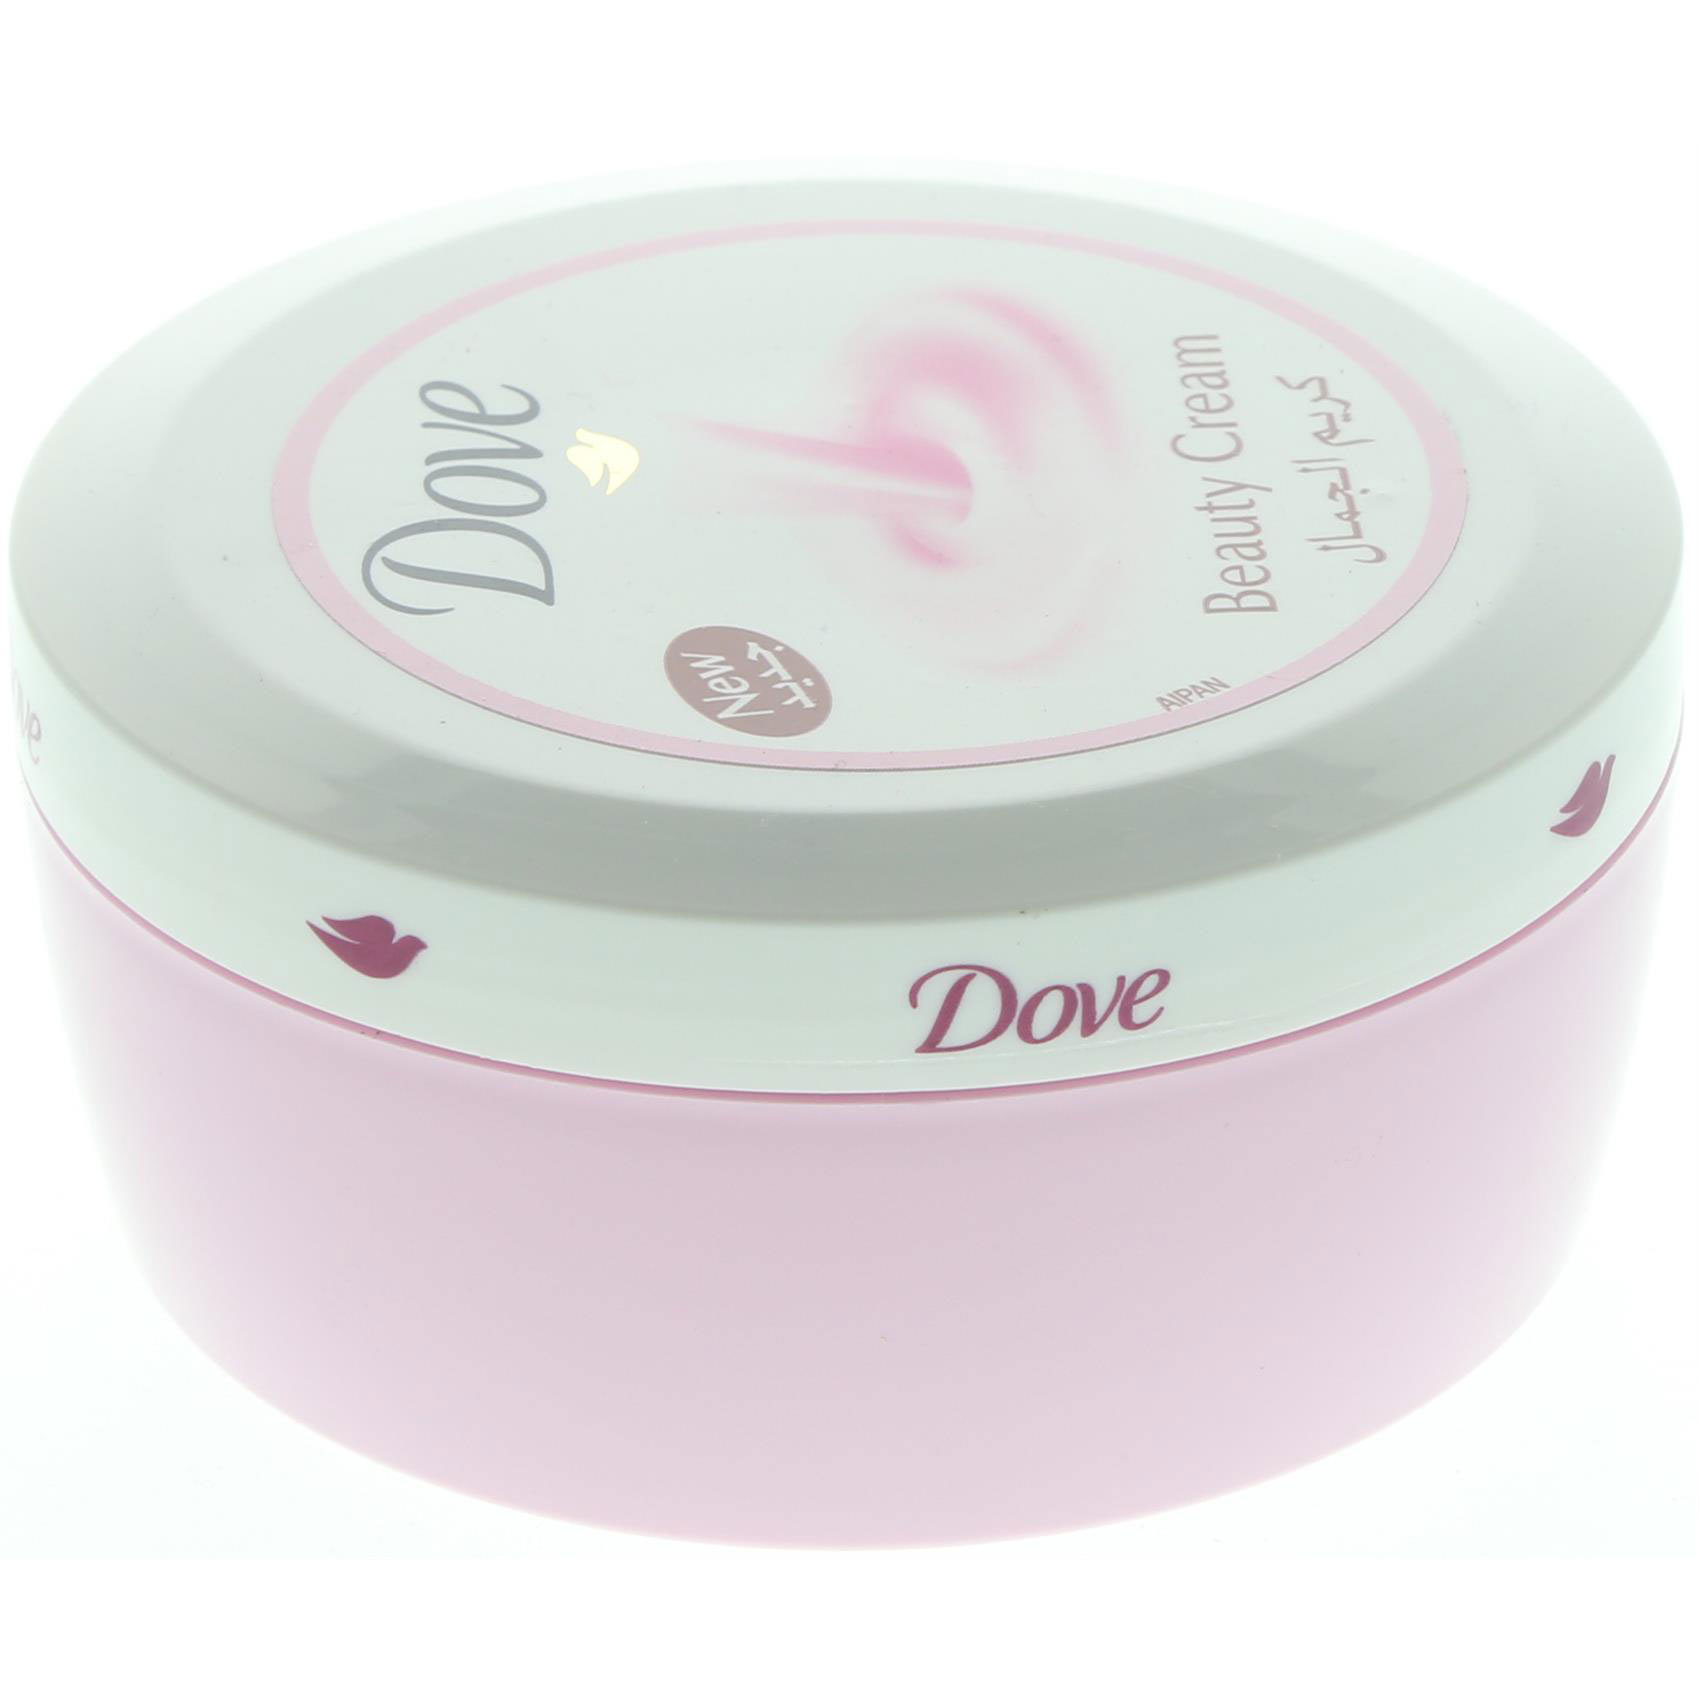 DOVE BTY CRM 250ML